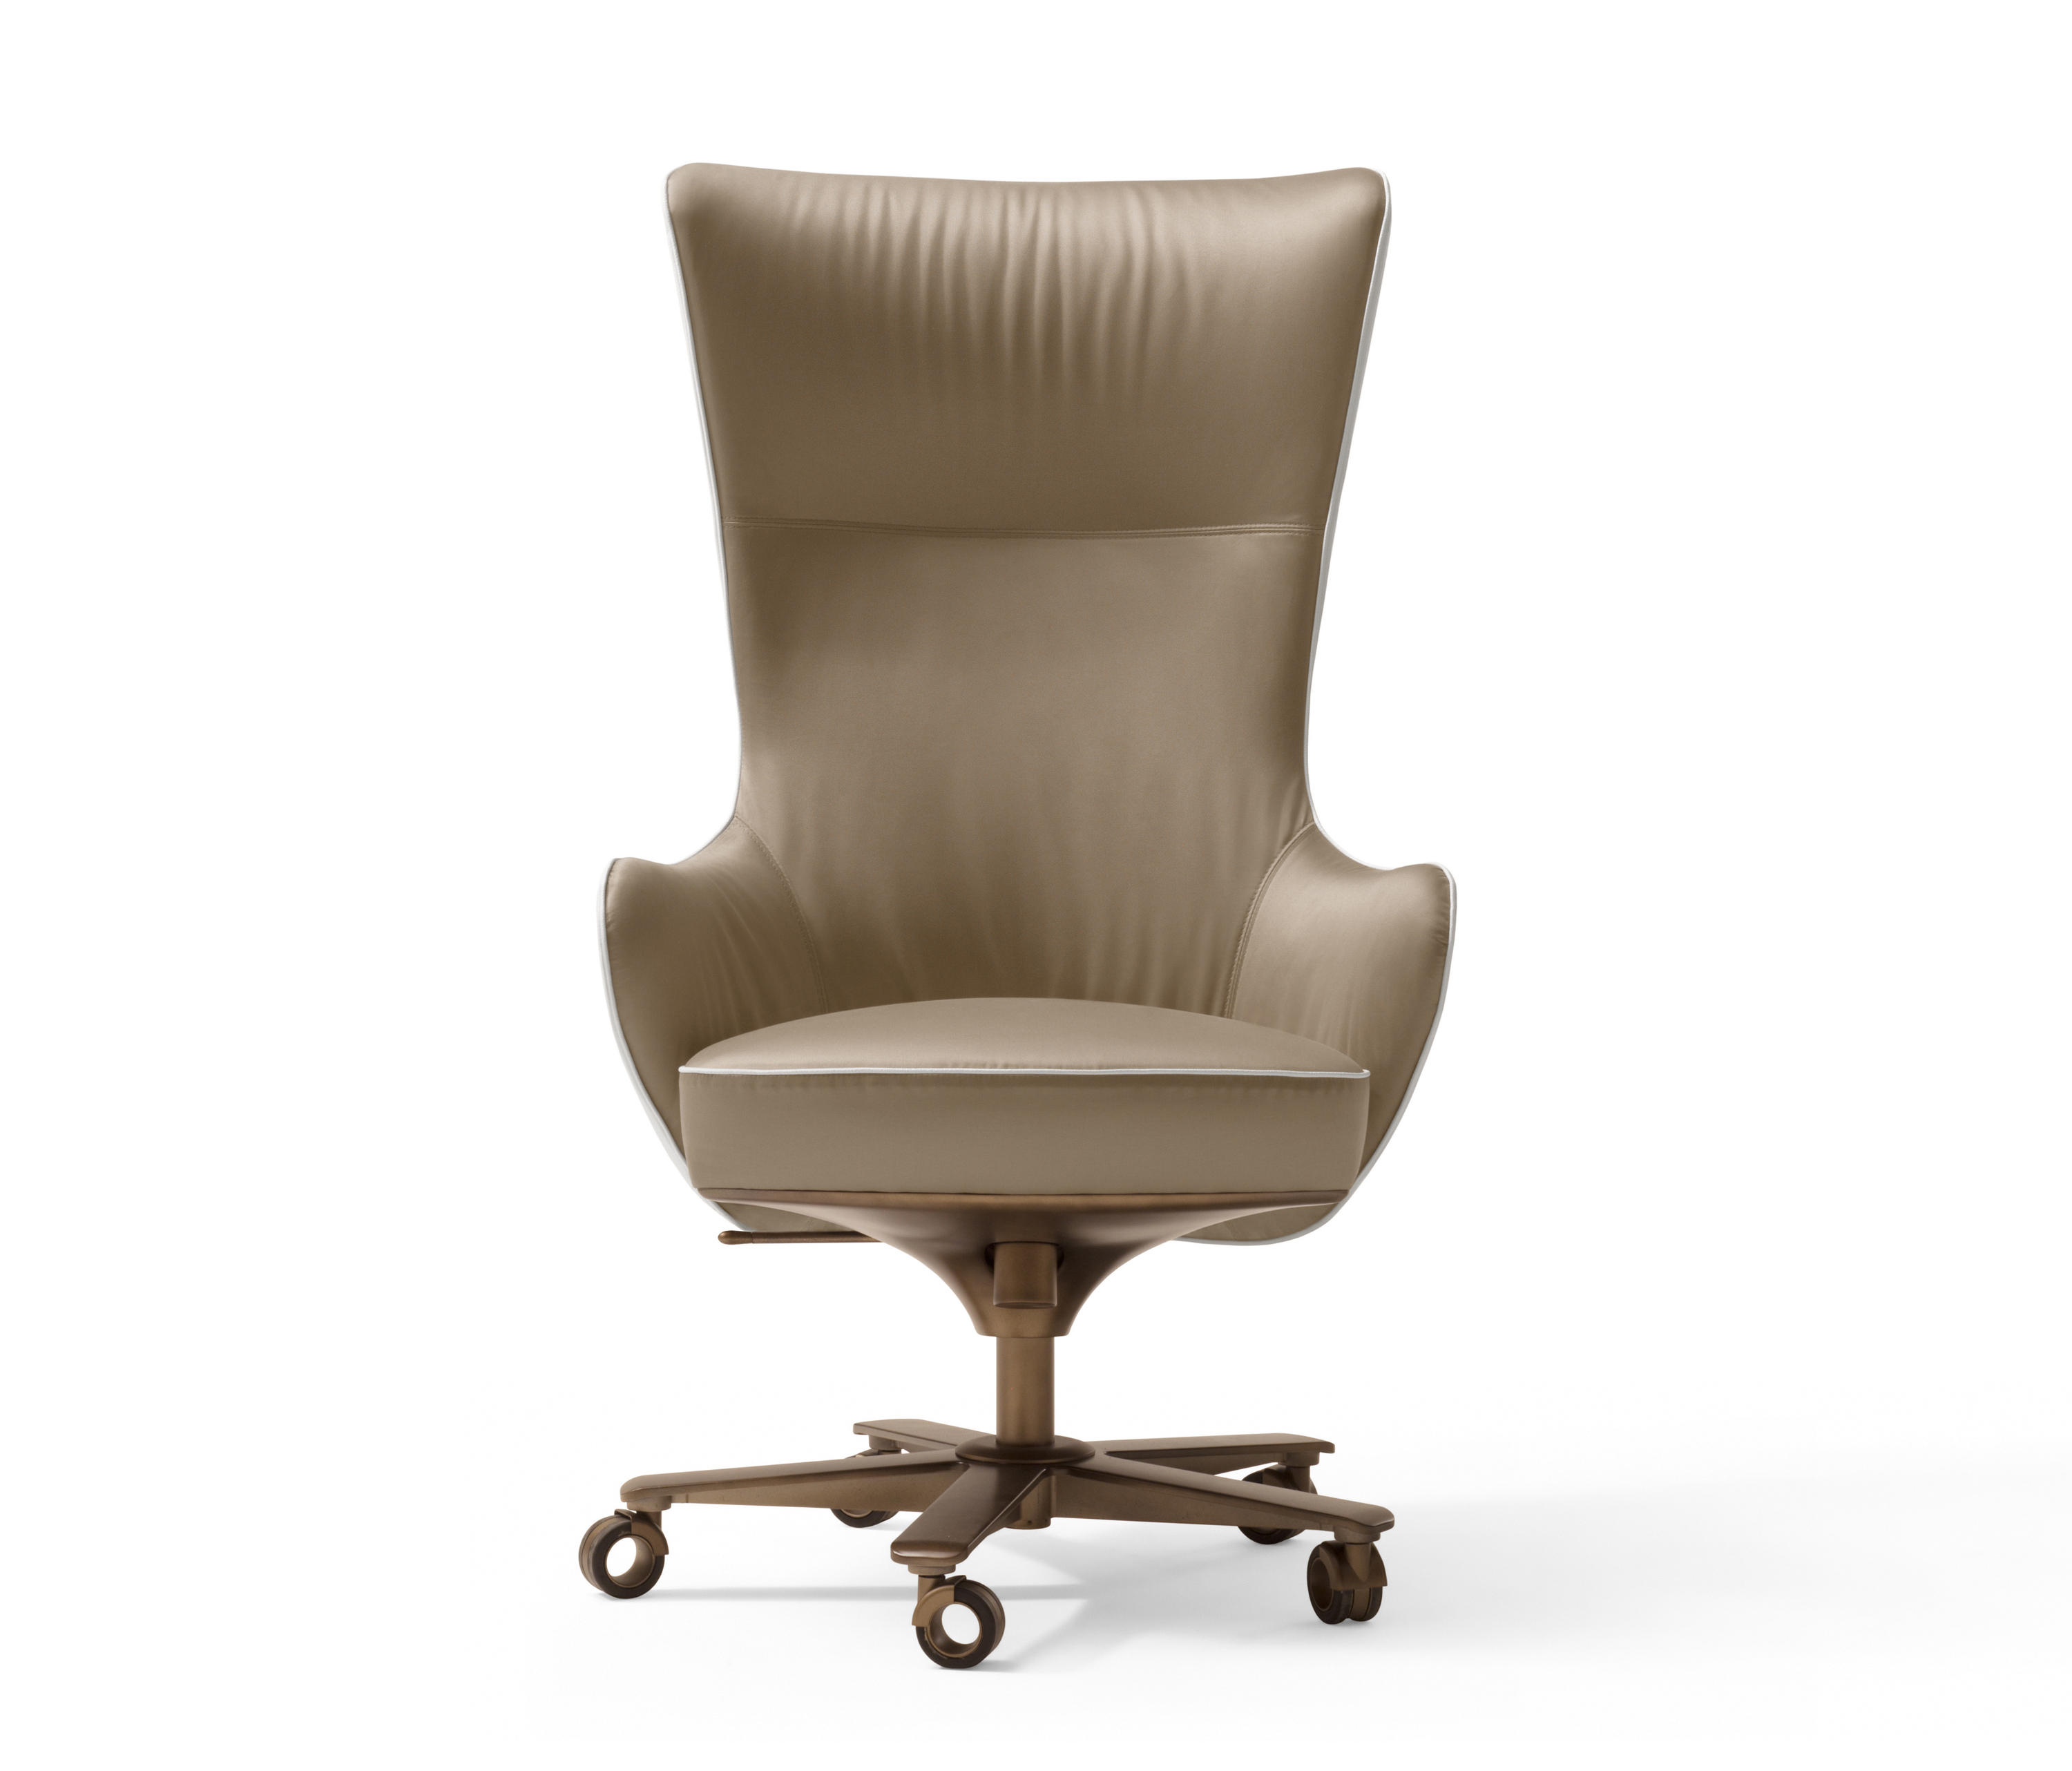 GENIUS ARMCHAIR Executive chairs from Gior ti